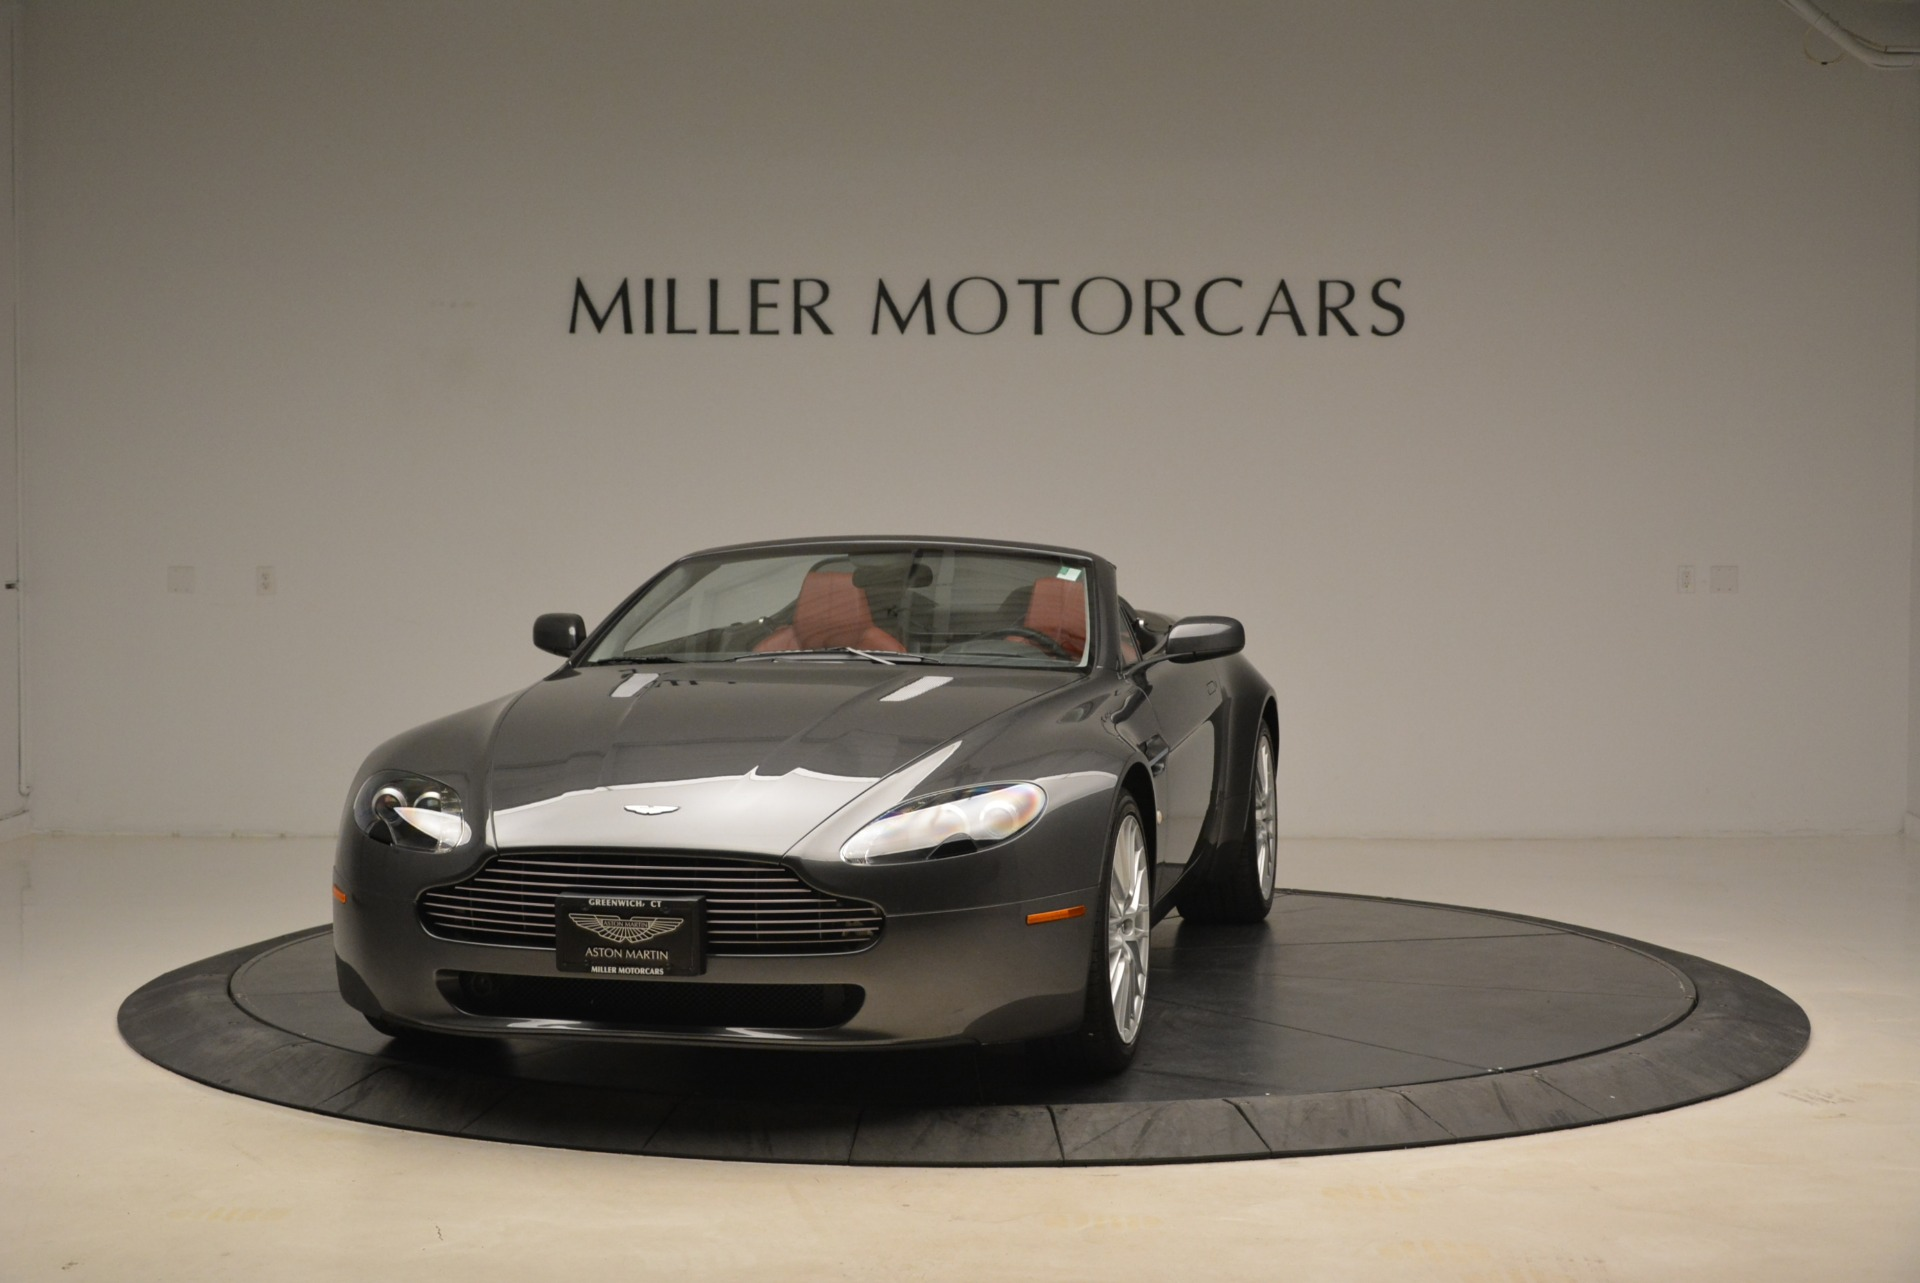 Used 2009 Aston Martin V8 Vantage Roadster for sale Sold at Alfa Romeo of Greenwich in Greenwich CT 06830 1